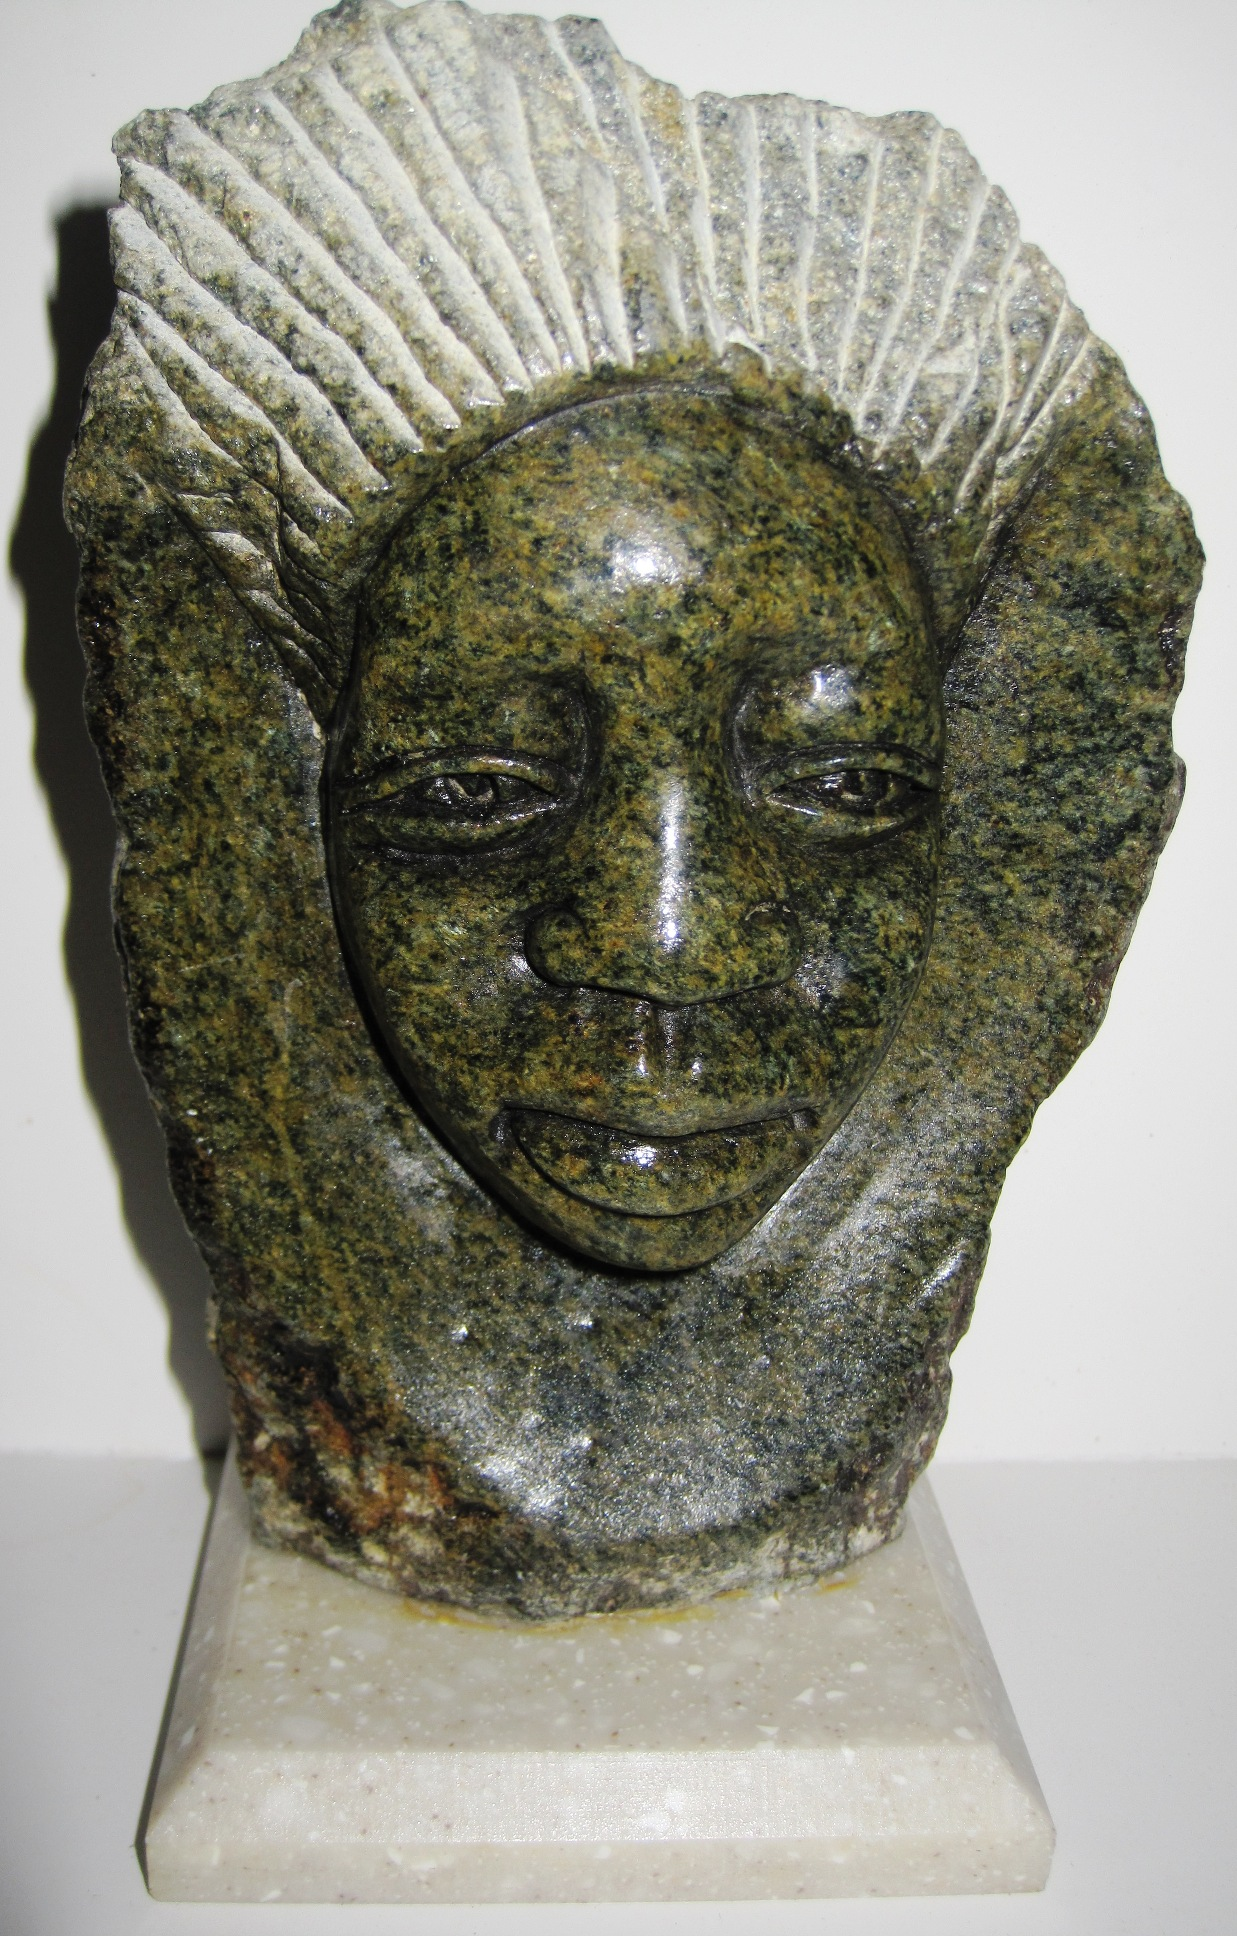 Shona Bust Carving